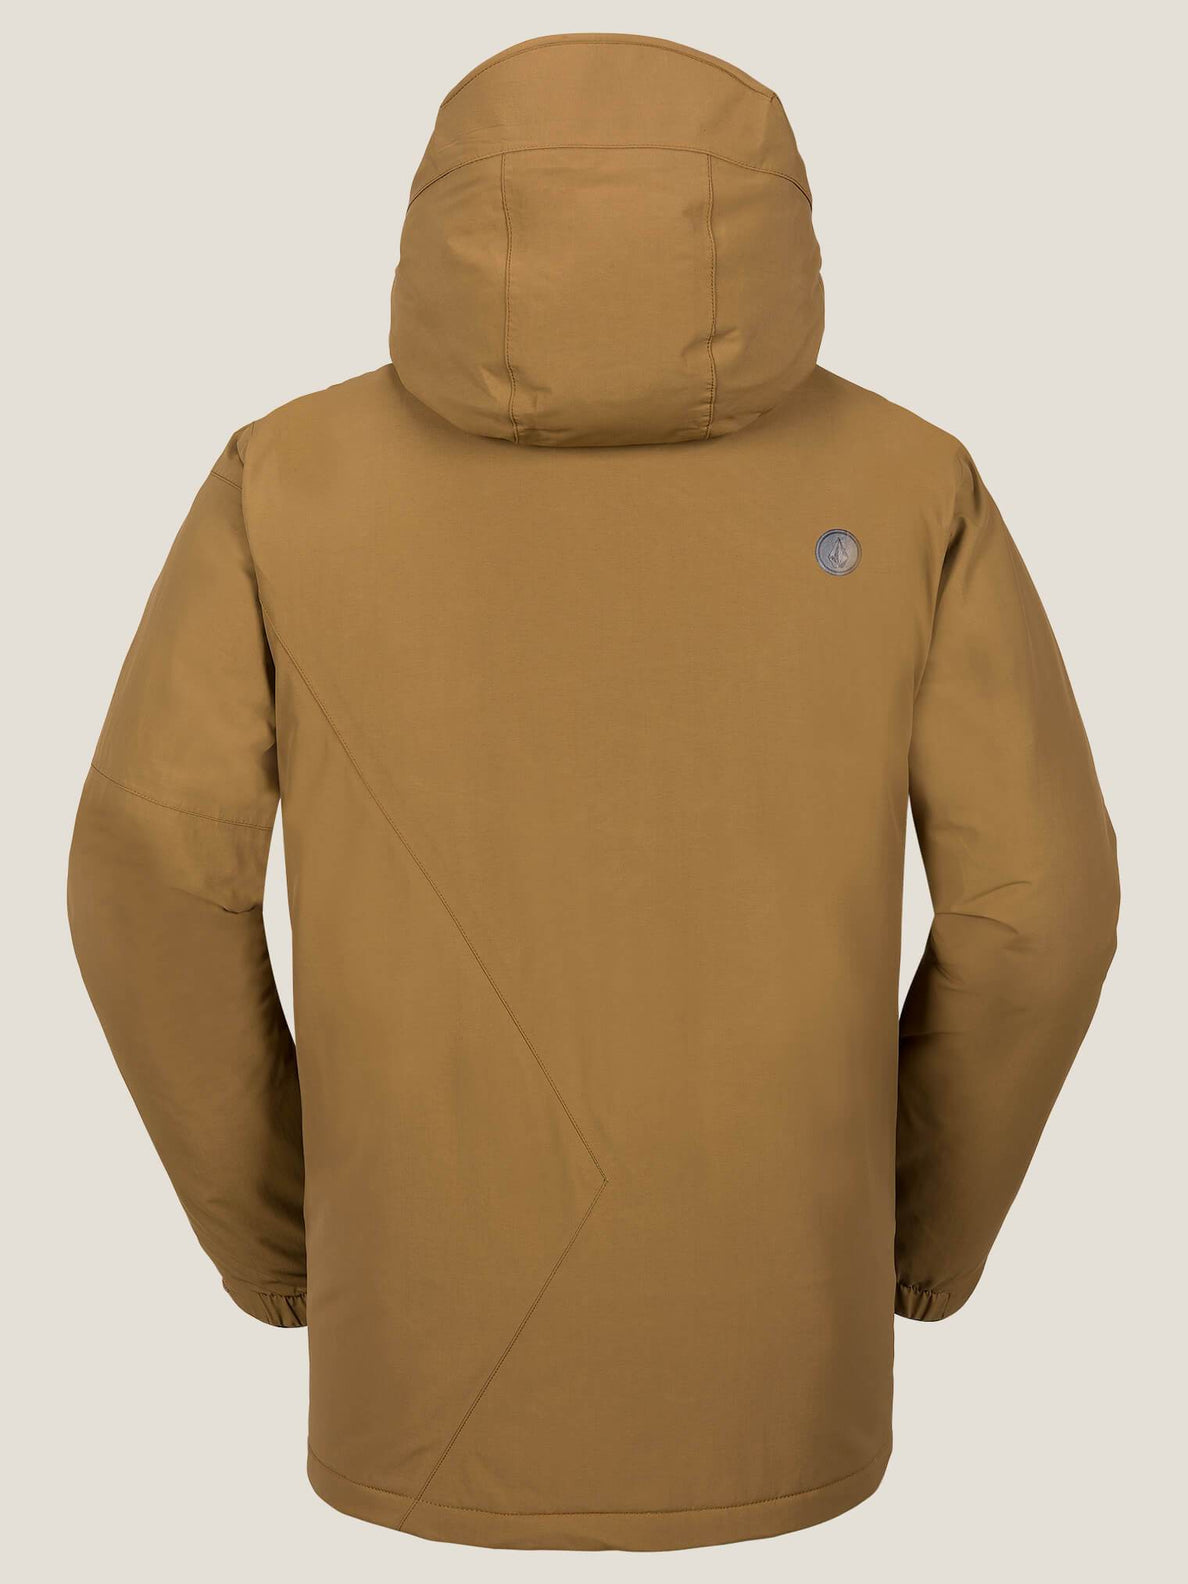 L Insulated Gore-tex® Jacket In Shepherd, Back View